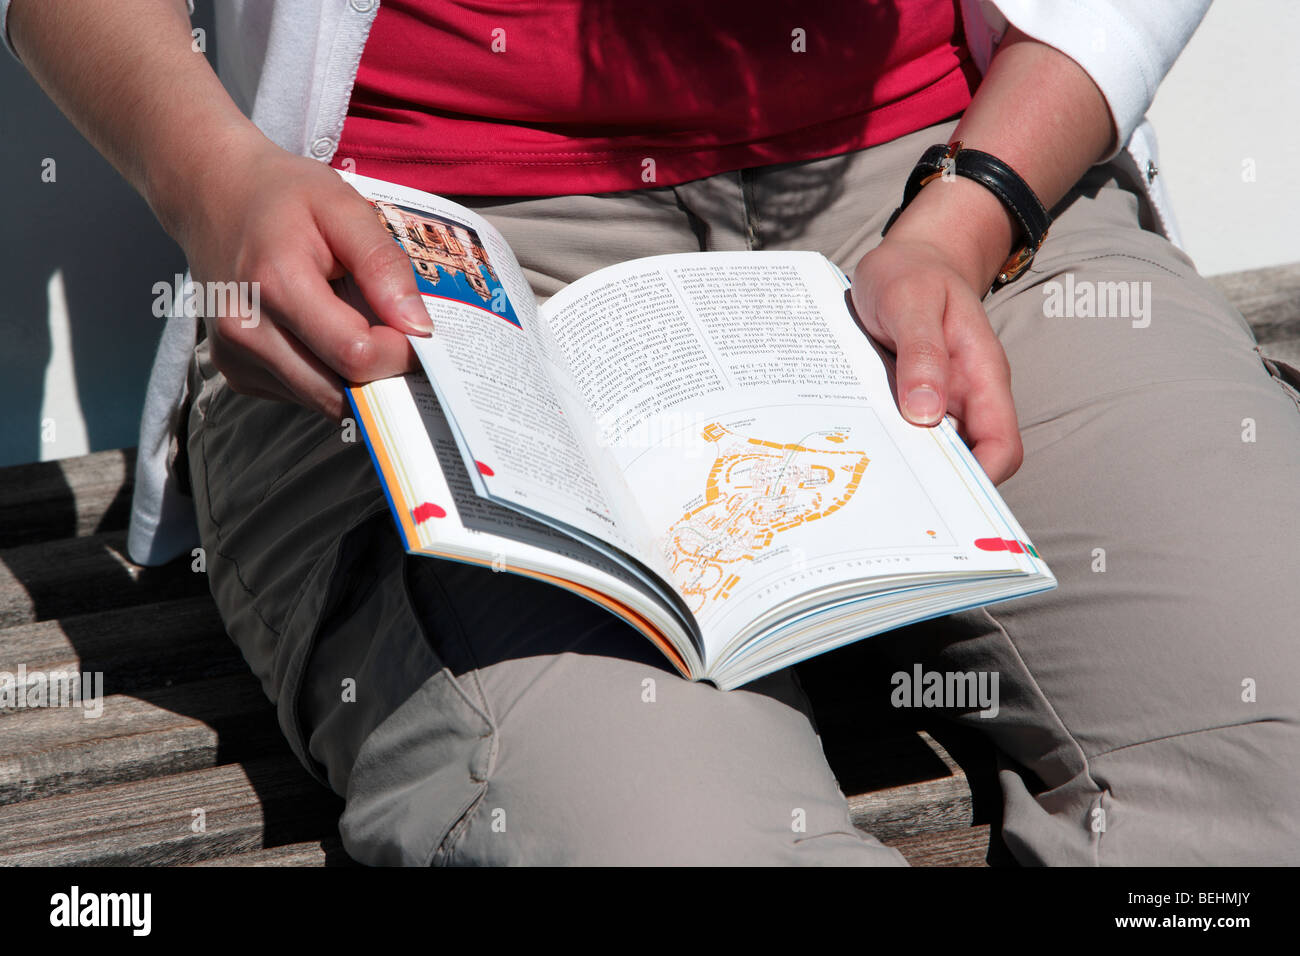 Tourist reading guide book - Stock Image